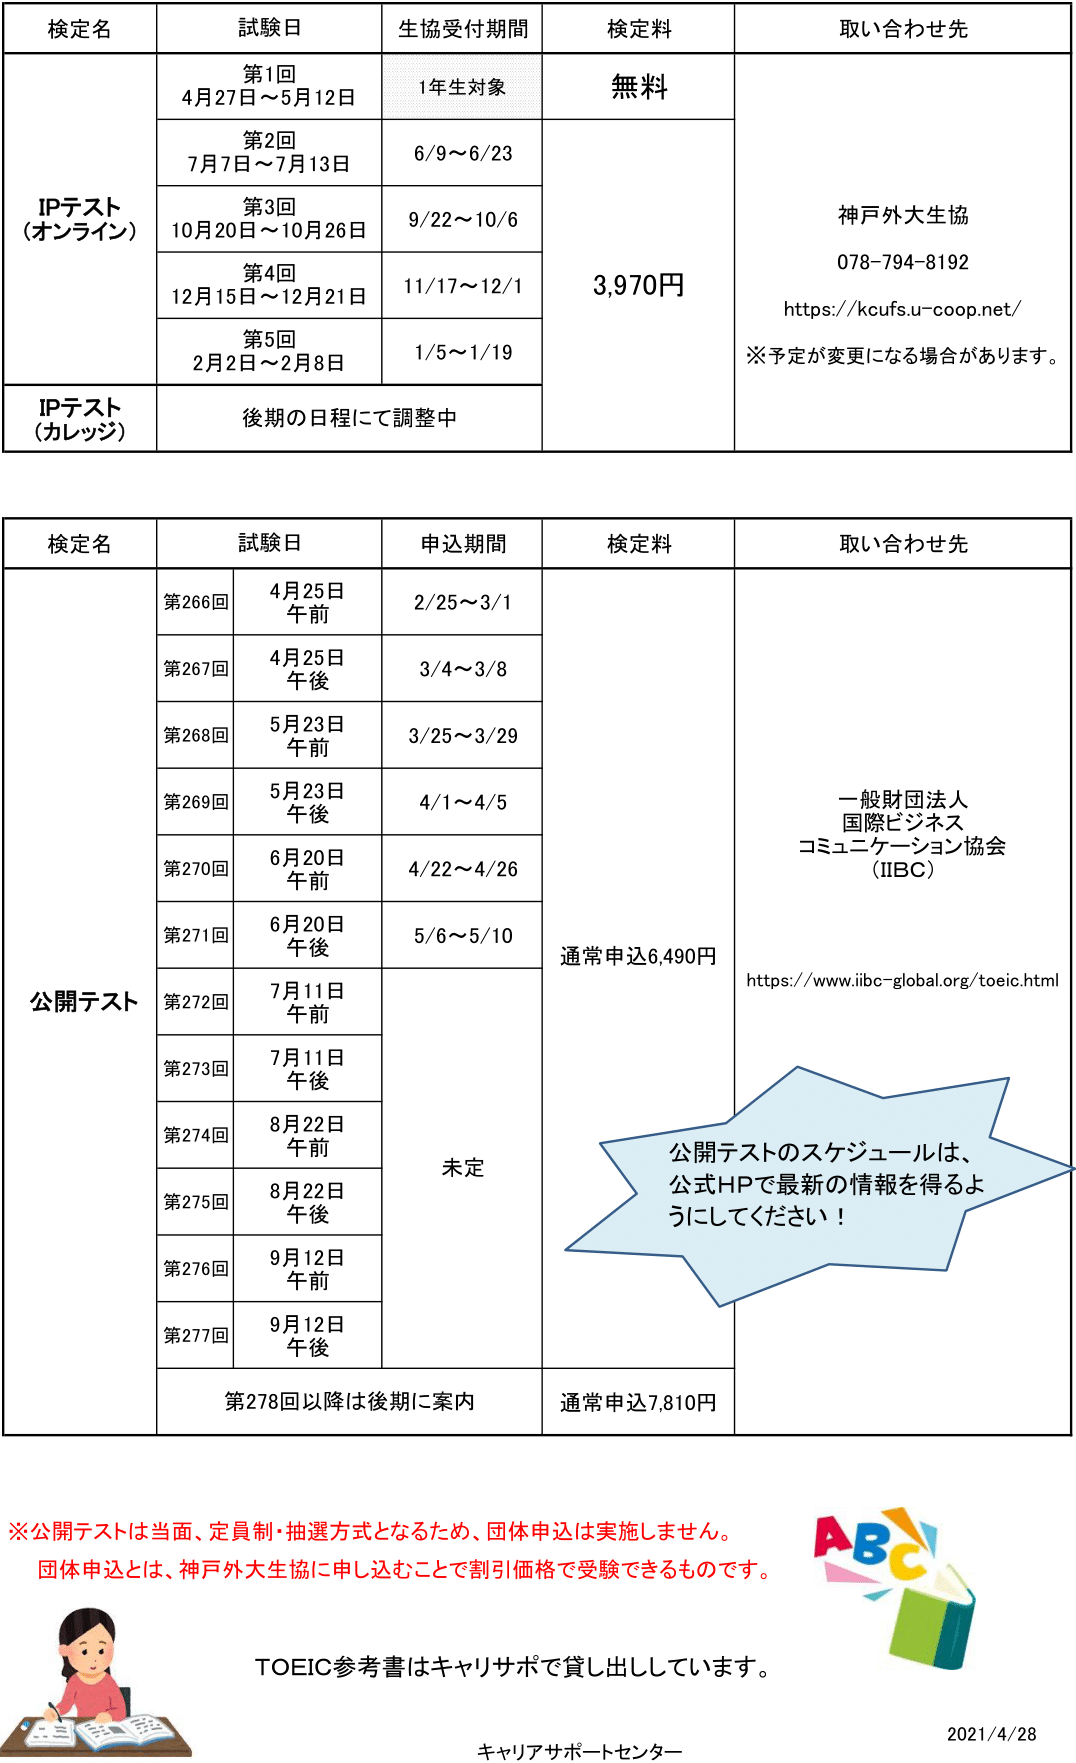 toeic2021-02.png